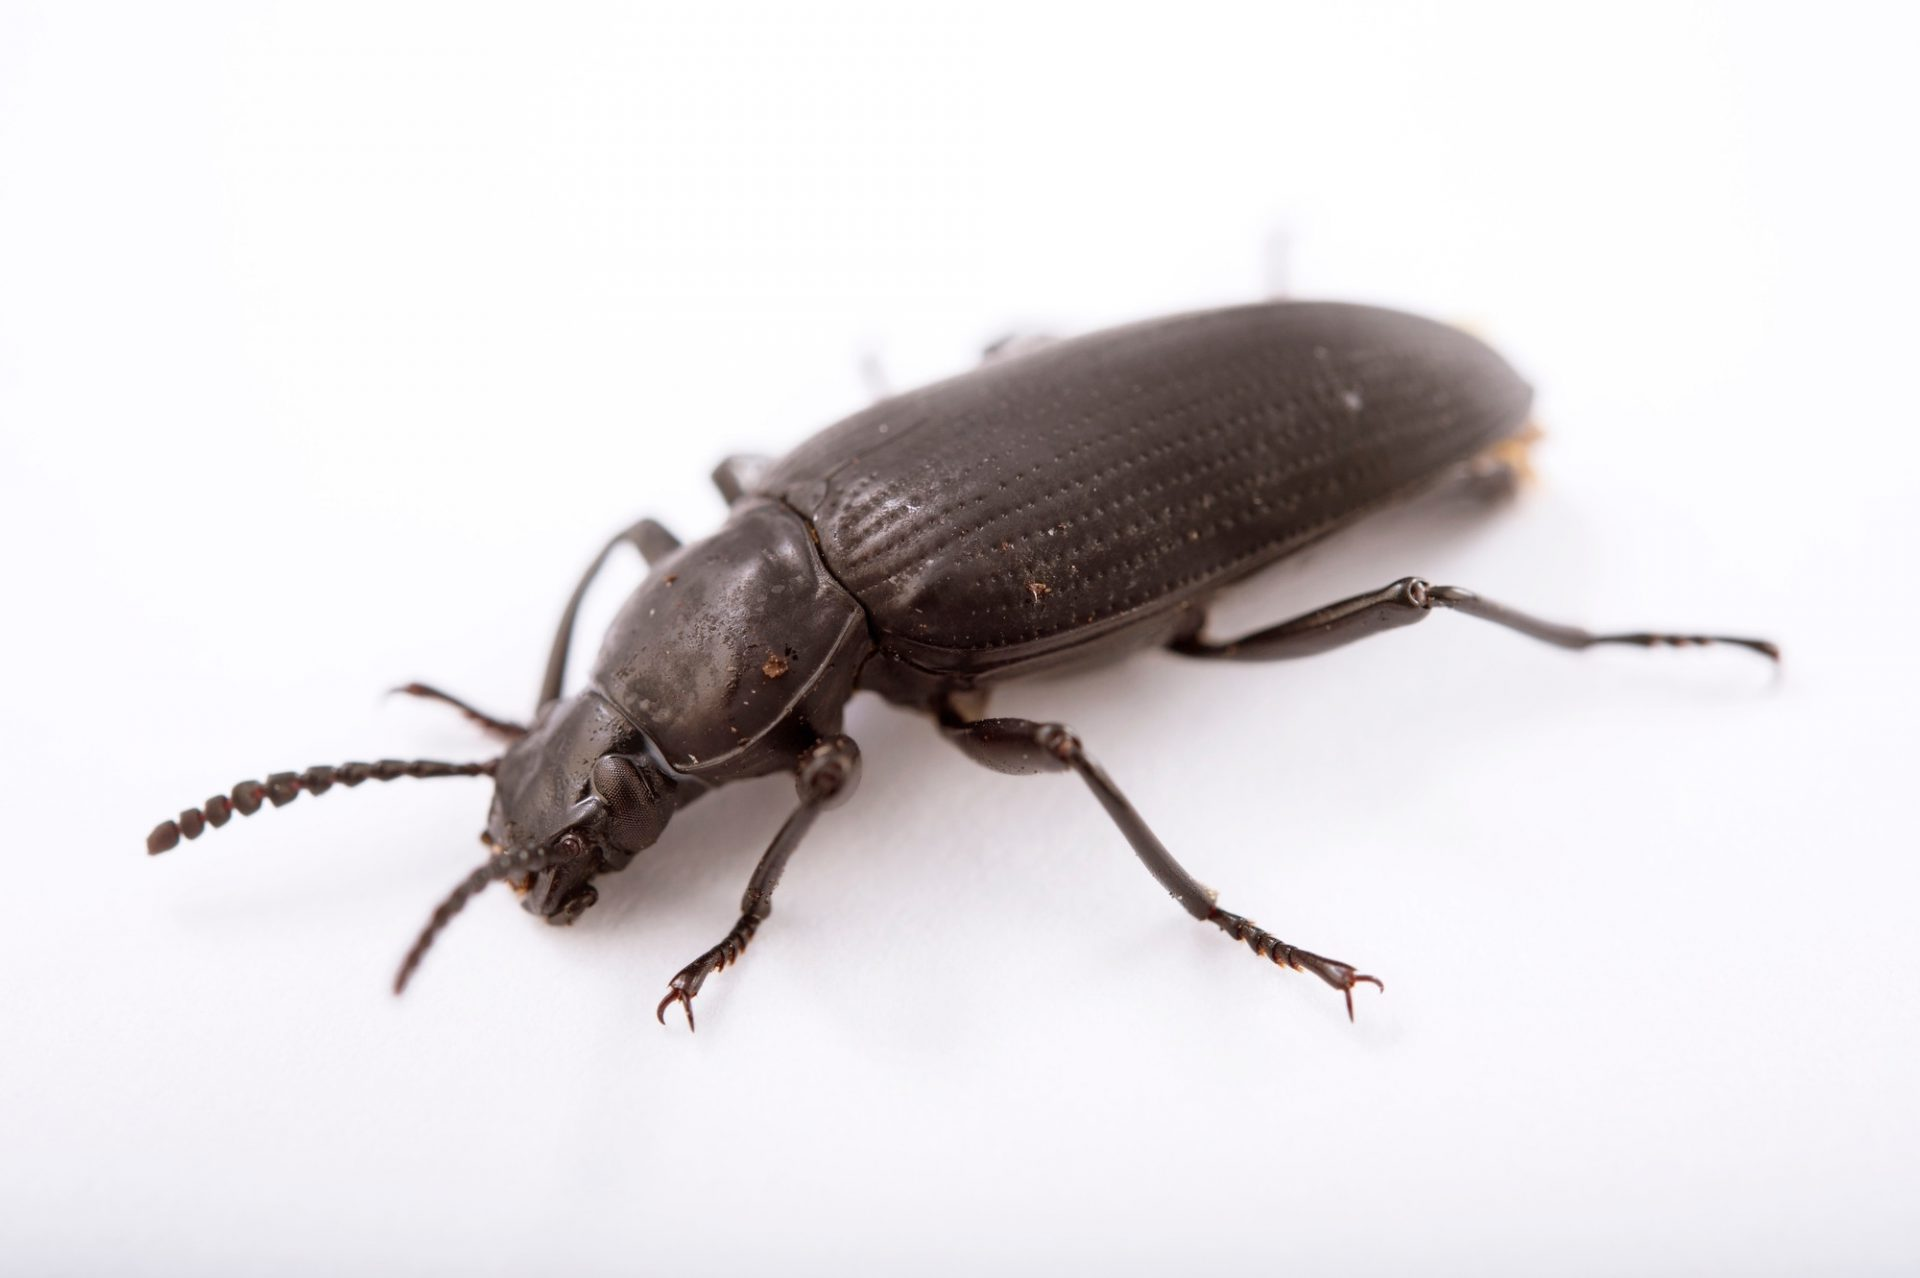 Picture of a darkling beetle (Zophobas morio) at the St. Louis Zoo.